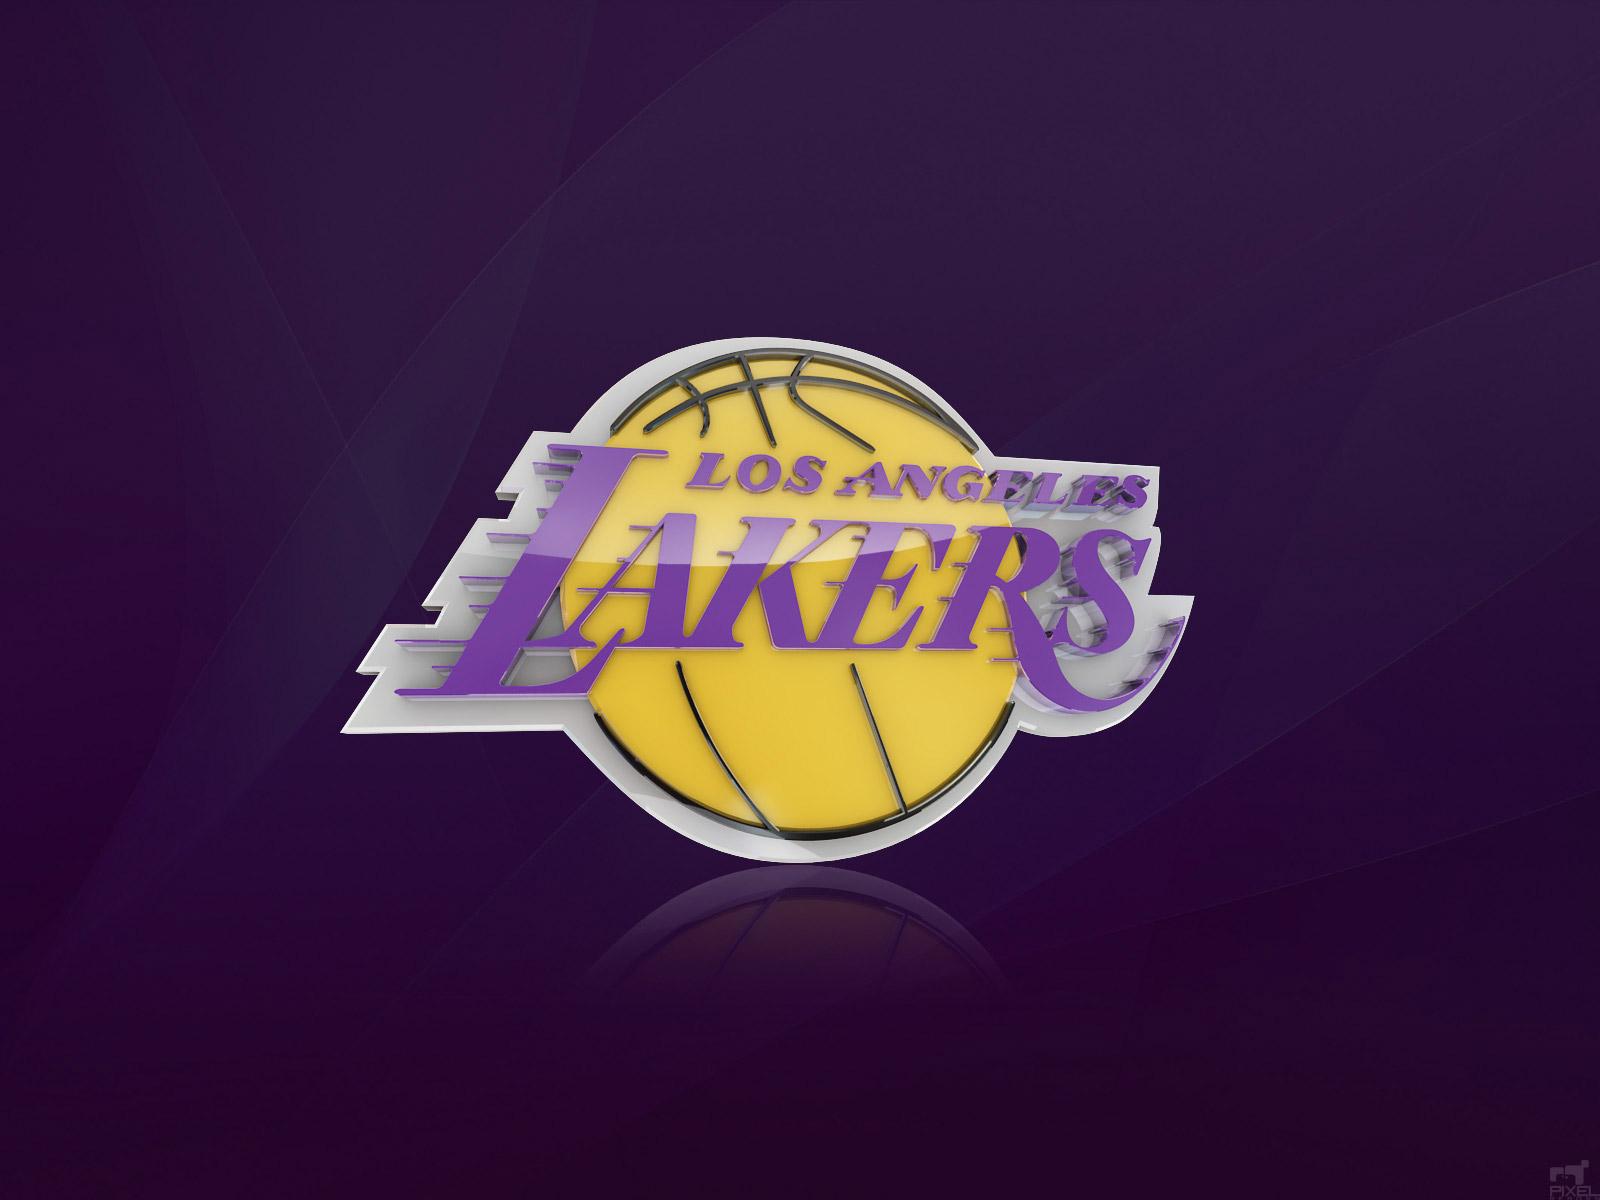 Los angeles lakers logo photo los angeles lakers logo voltagebd Images